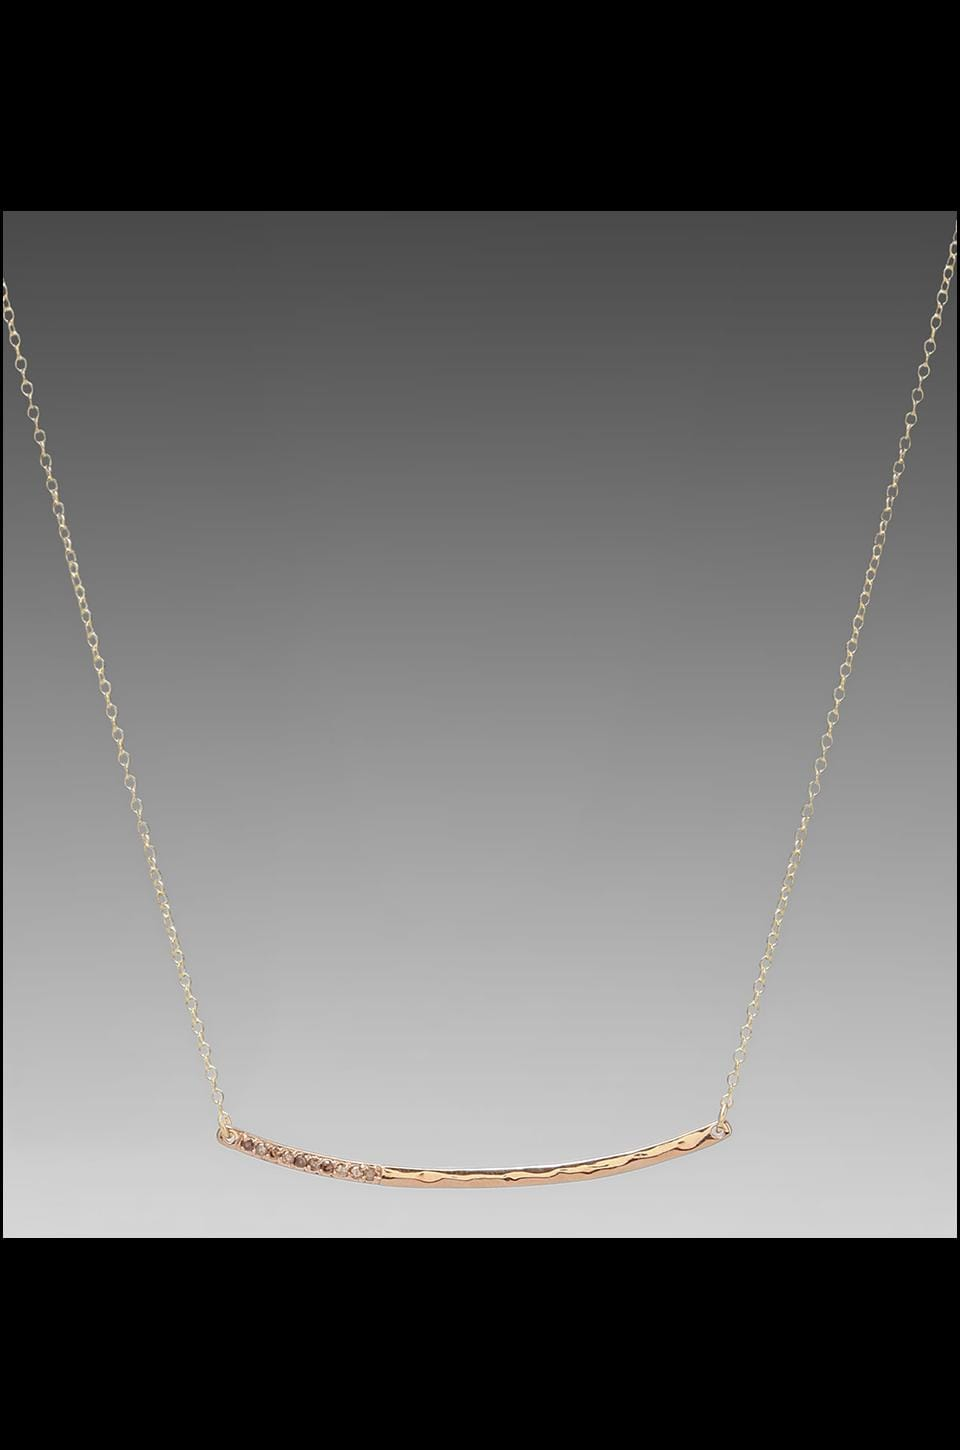 gorjana Taner Shimmer Necklace in Rosegold